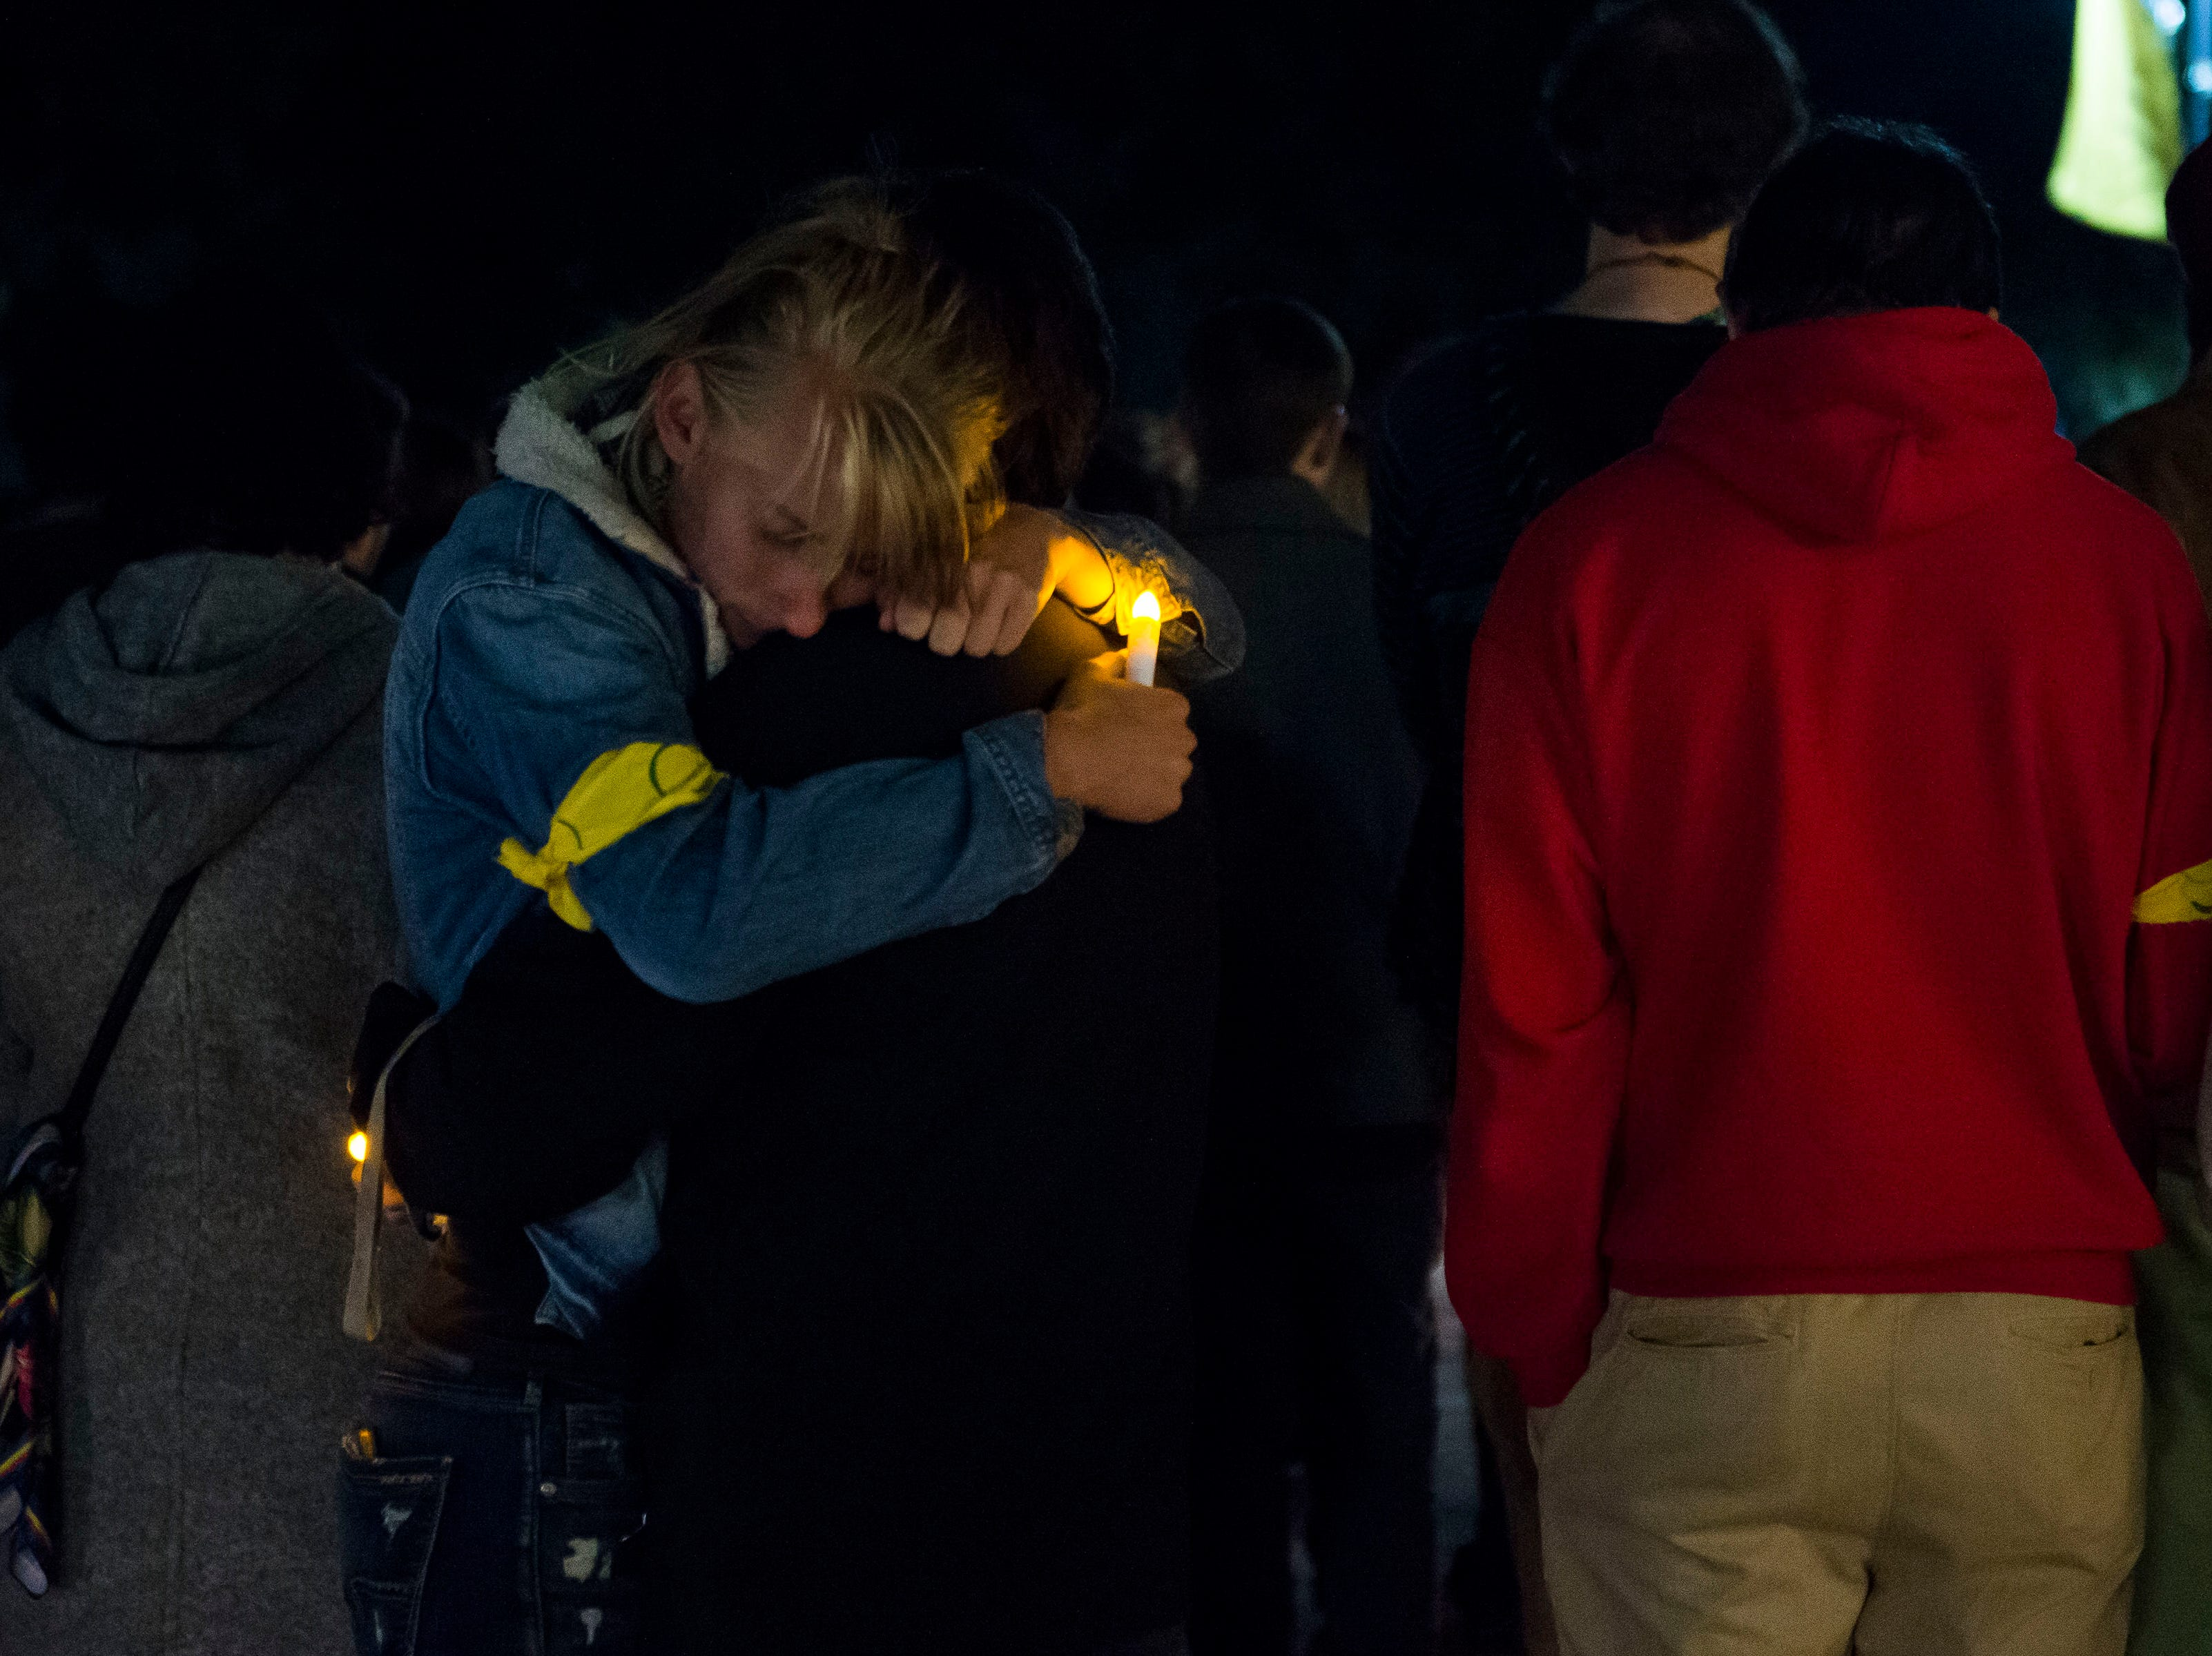 Vigil participants embrace during a candlelight vigil on the 20th anniversary of Matthew Shepard's death on Friday, Oct. 12, 2018, at Prexy's Pasture on the University of Wyoming campus in Laramie, Wyo.